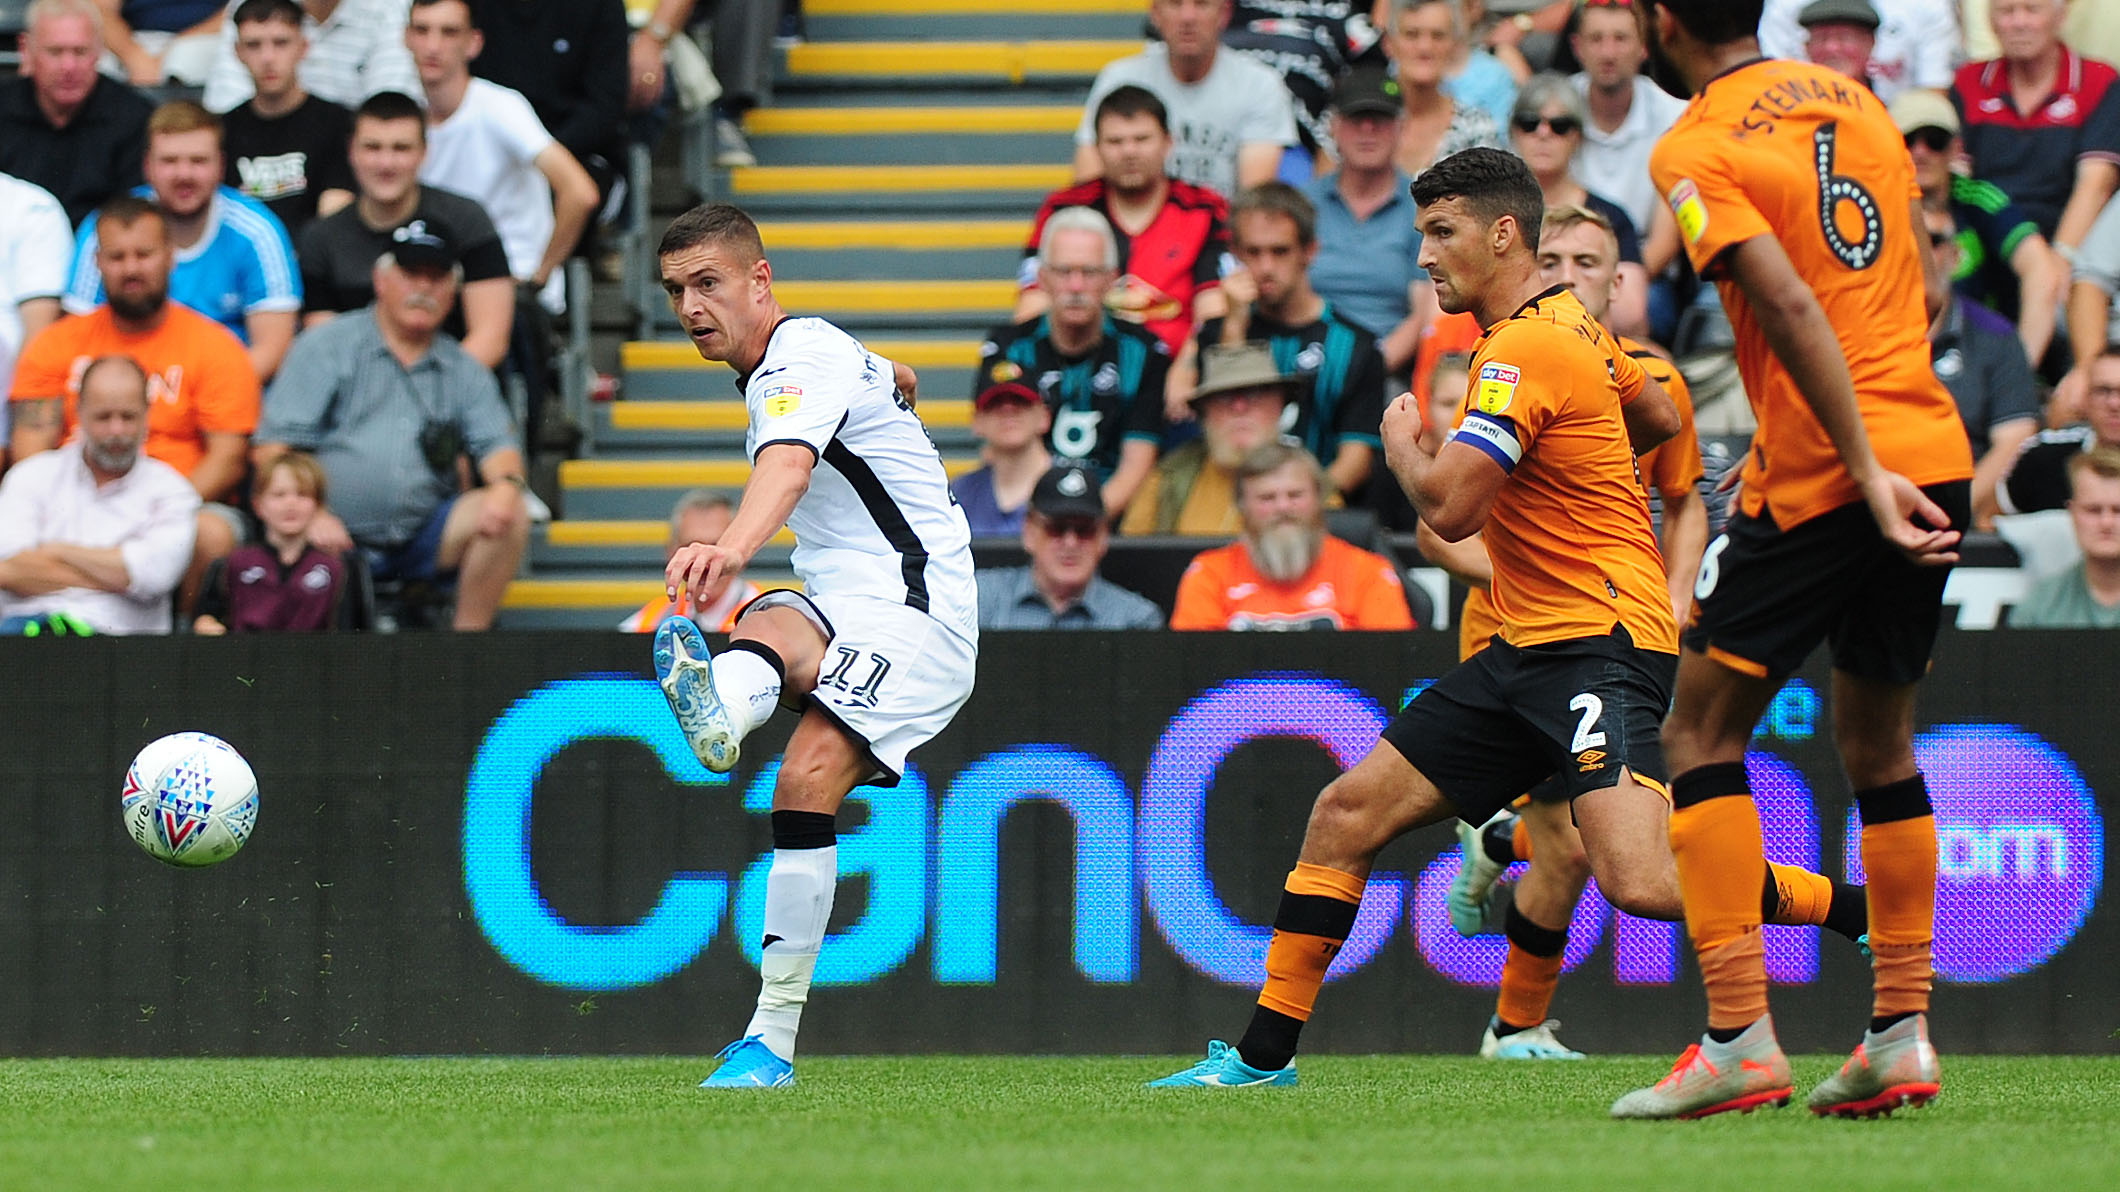 Swansea City v Hull City